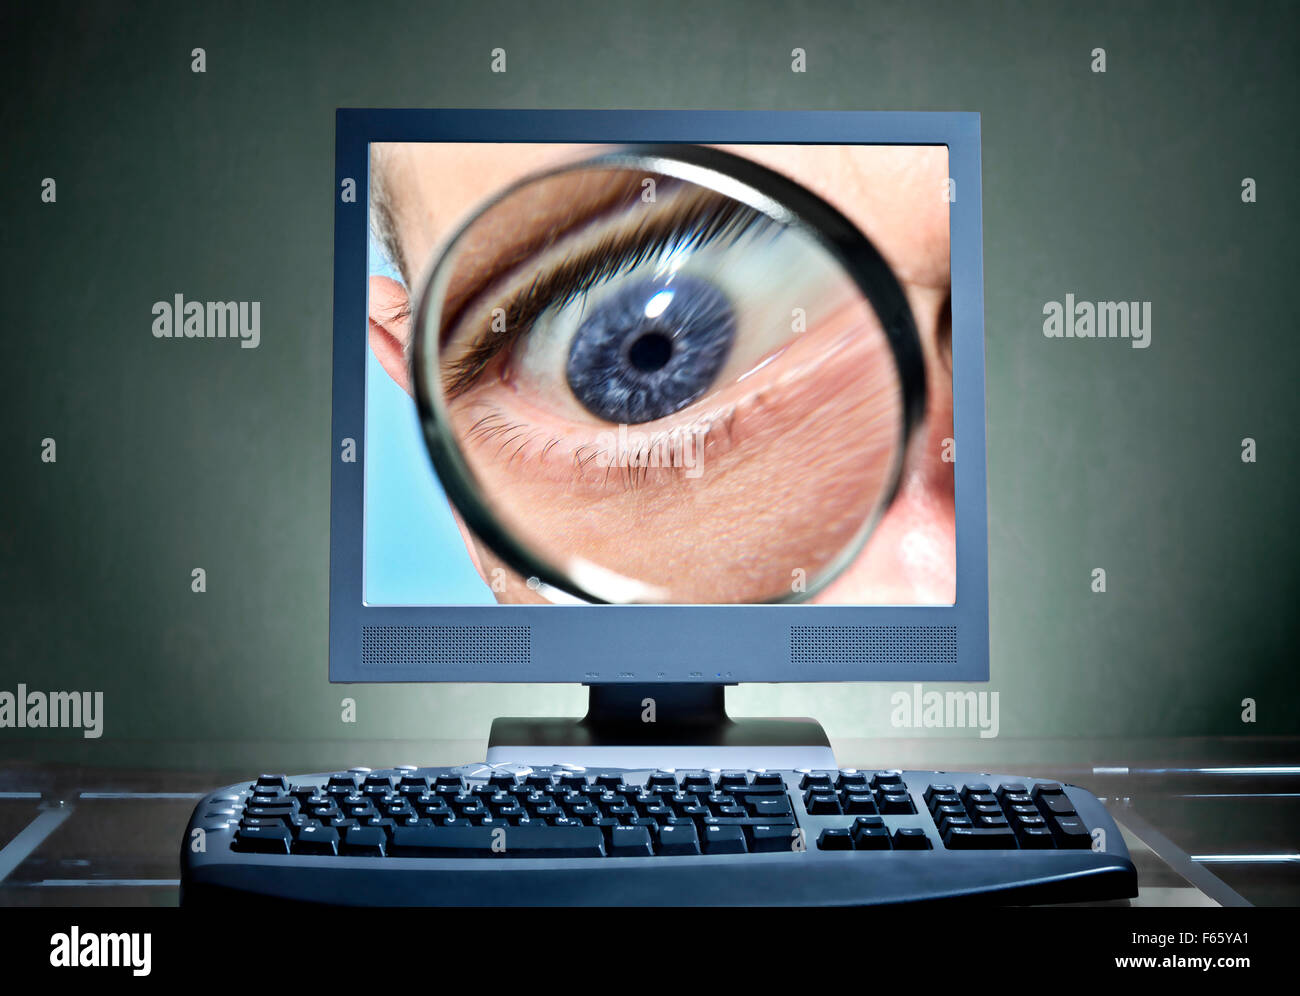 Eye with magnifier on a computer screen as an icon for monitoring - Stock Image